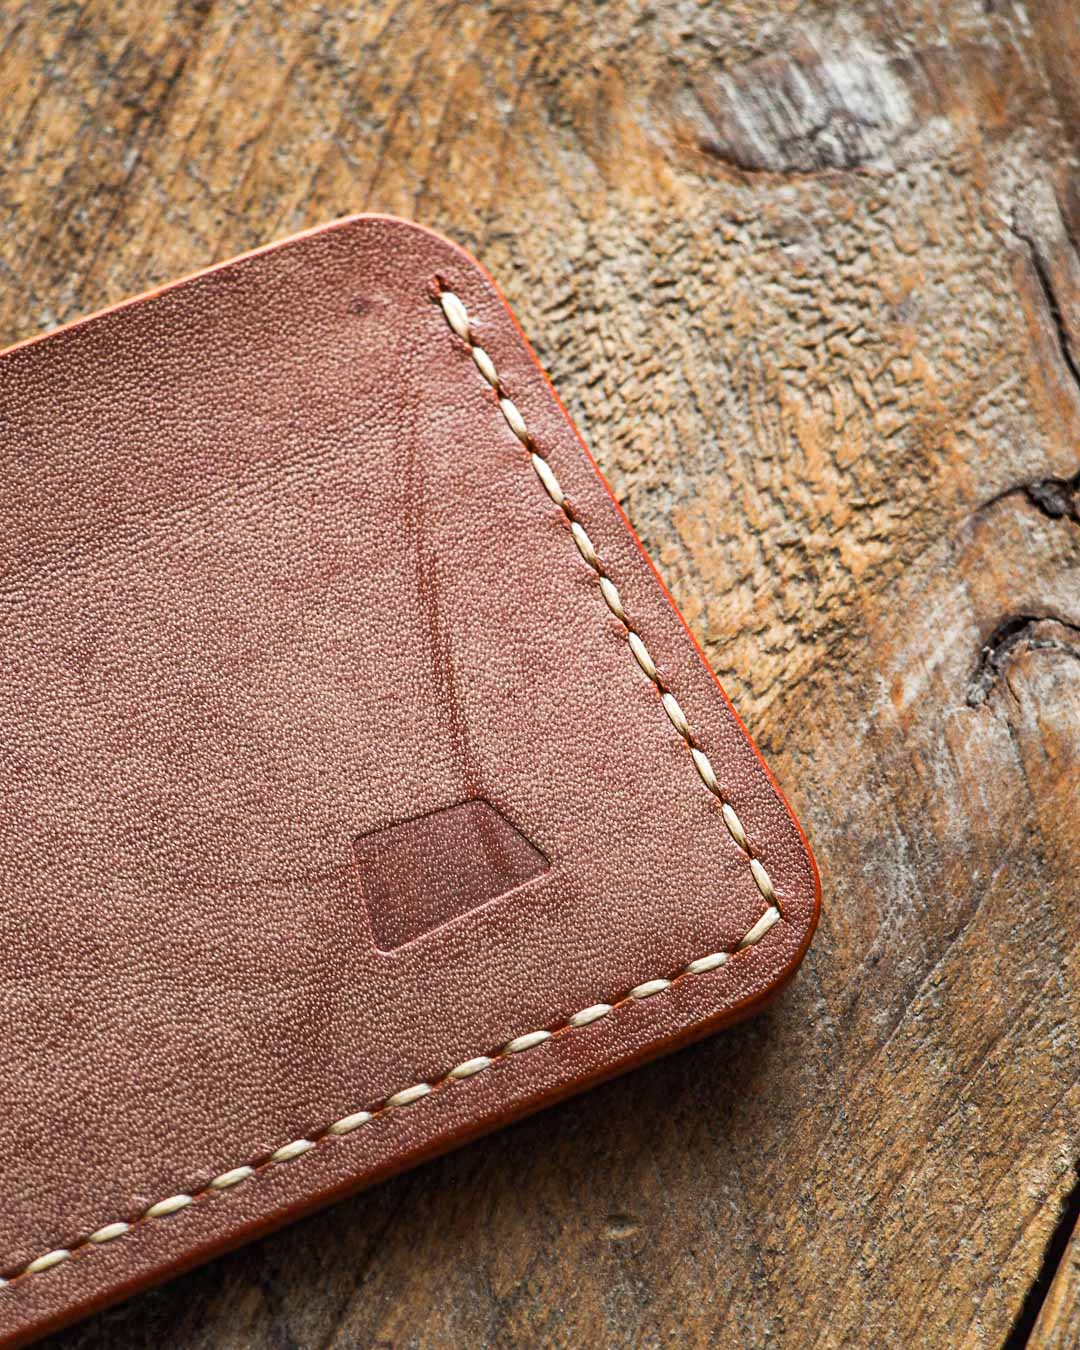 Luava handmade leather wallet handcrafted card holder cardholder made in finland proper ghost whiskey logo detail